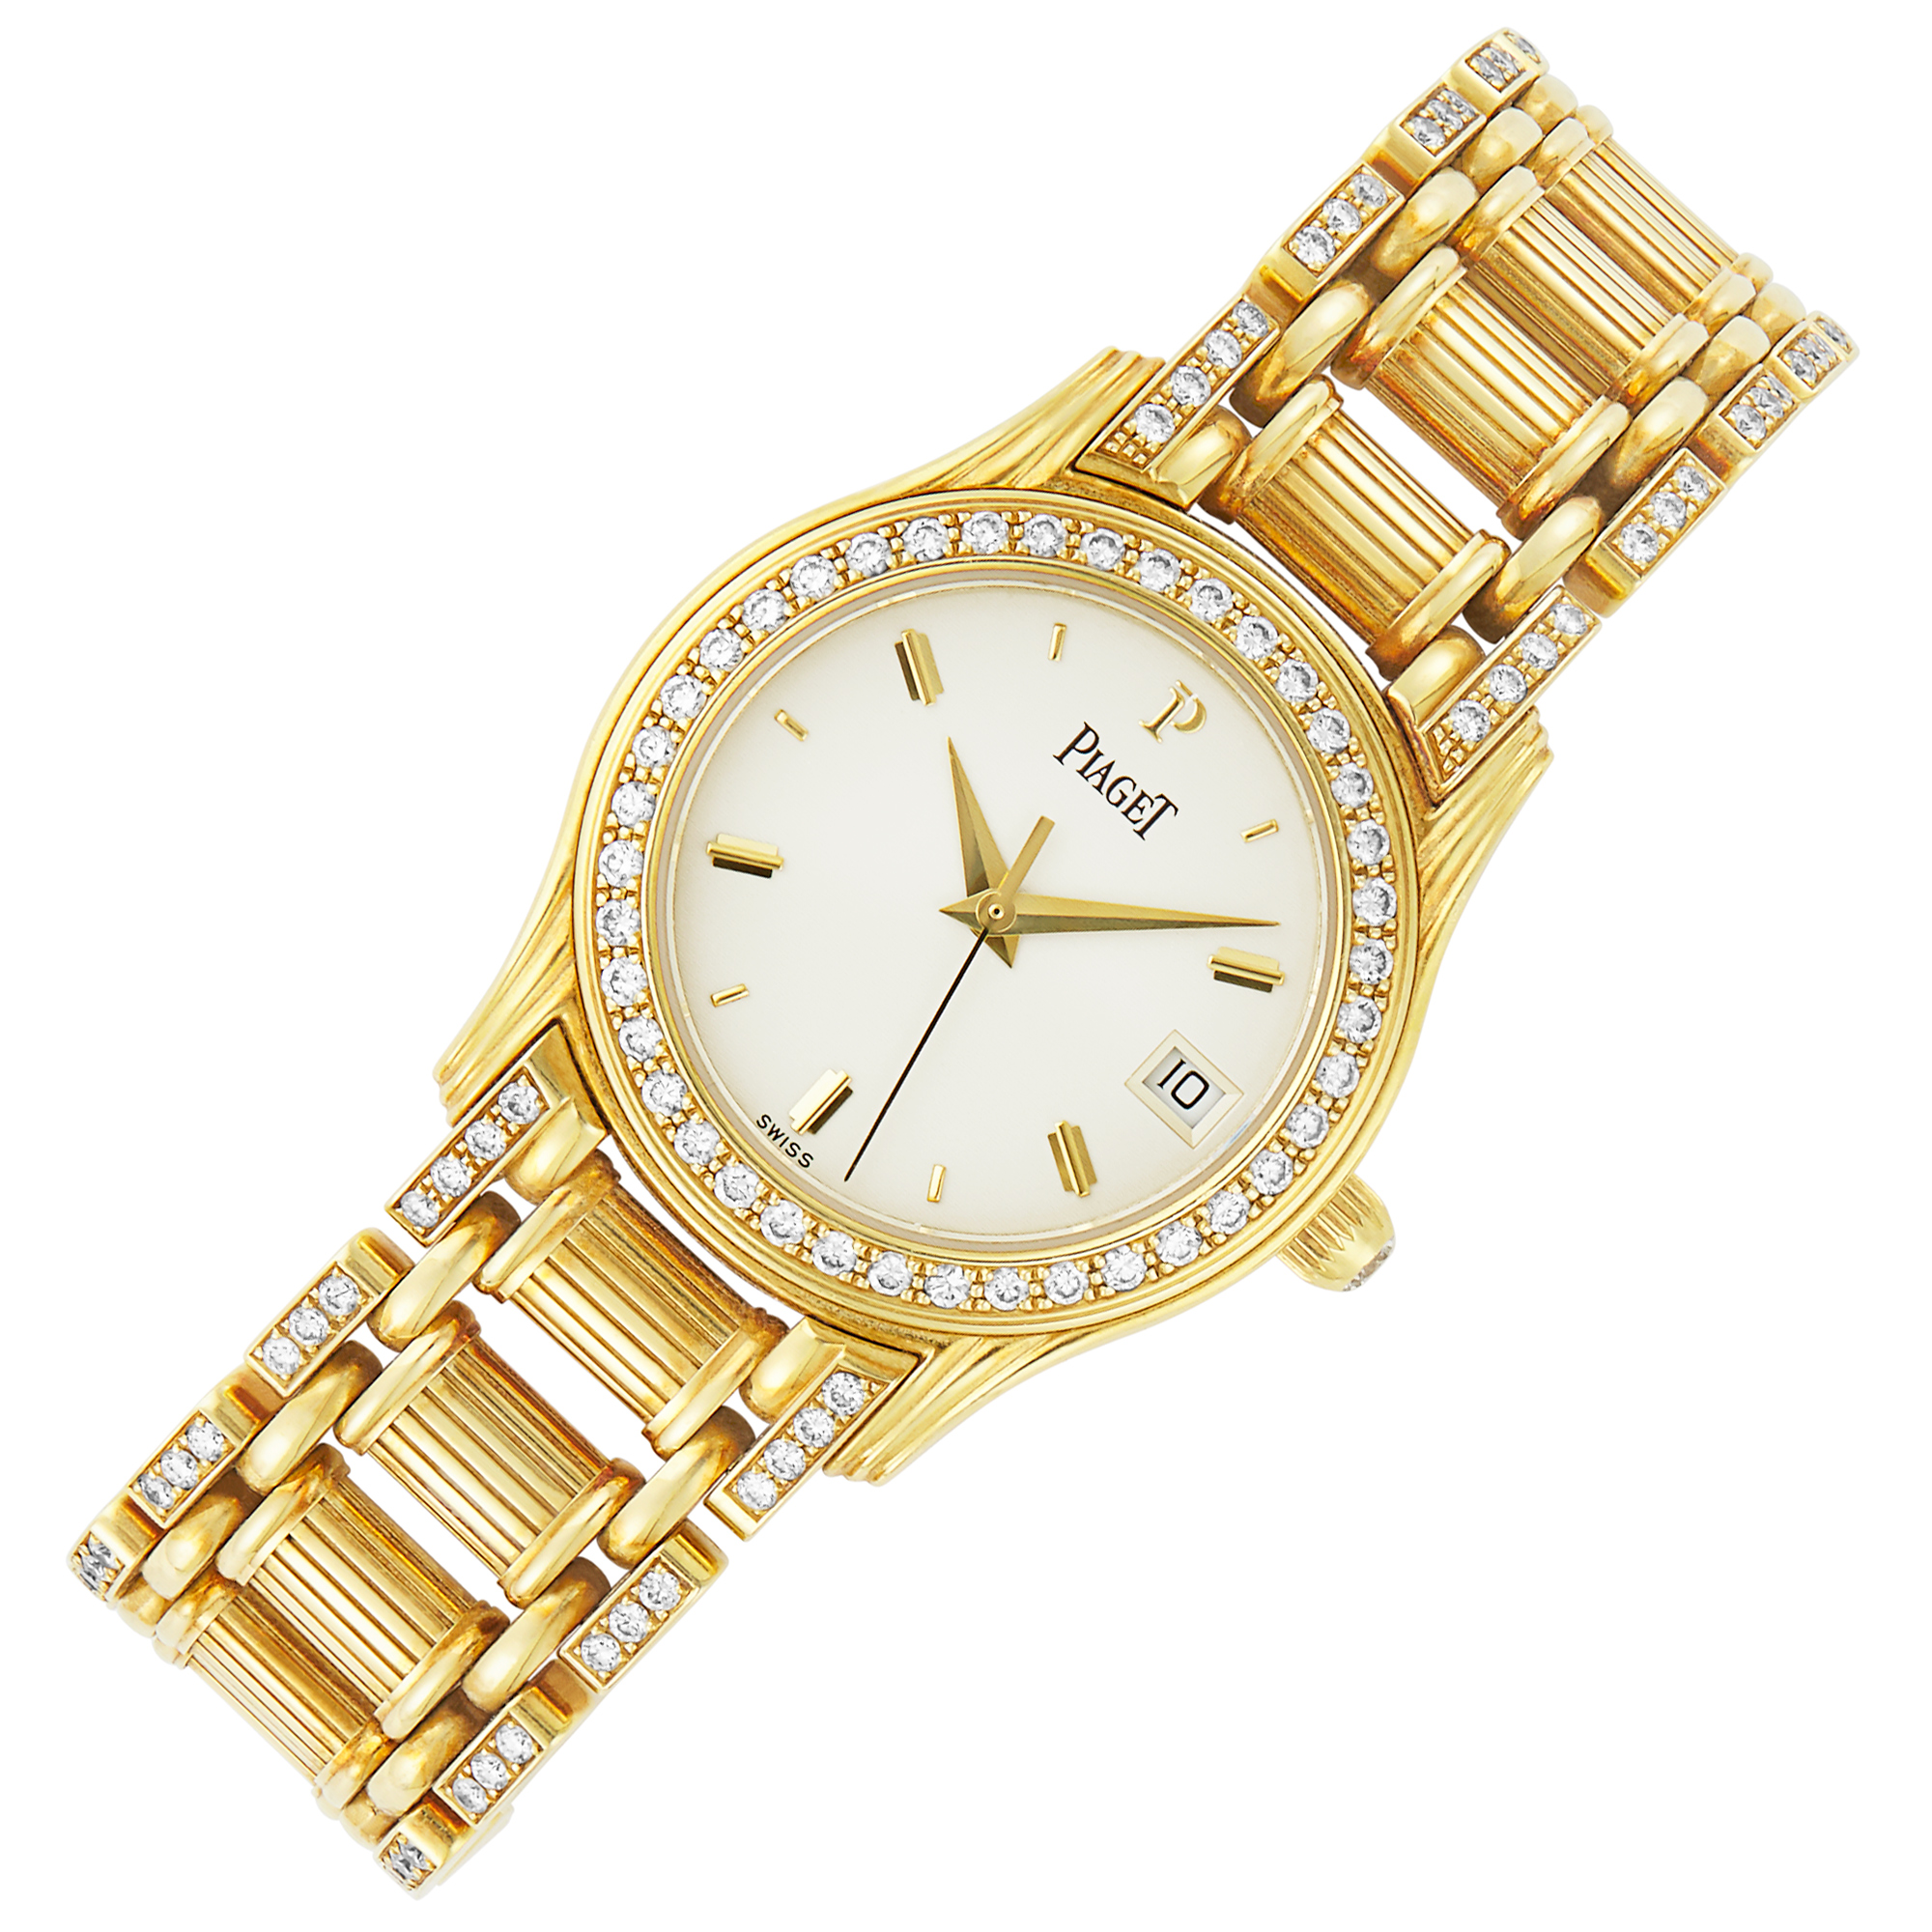 Lot image - Gold and Diamond Dancer Wristwatch, Piaget